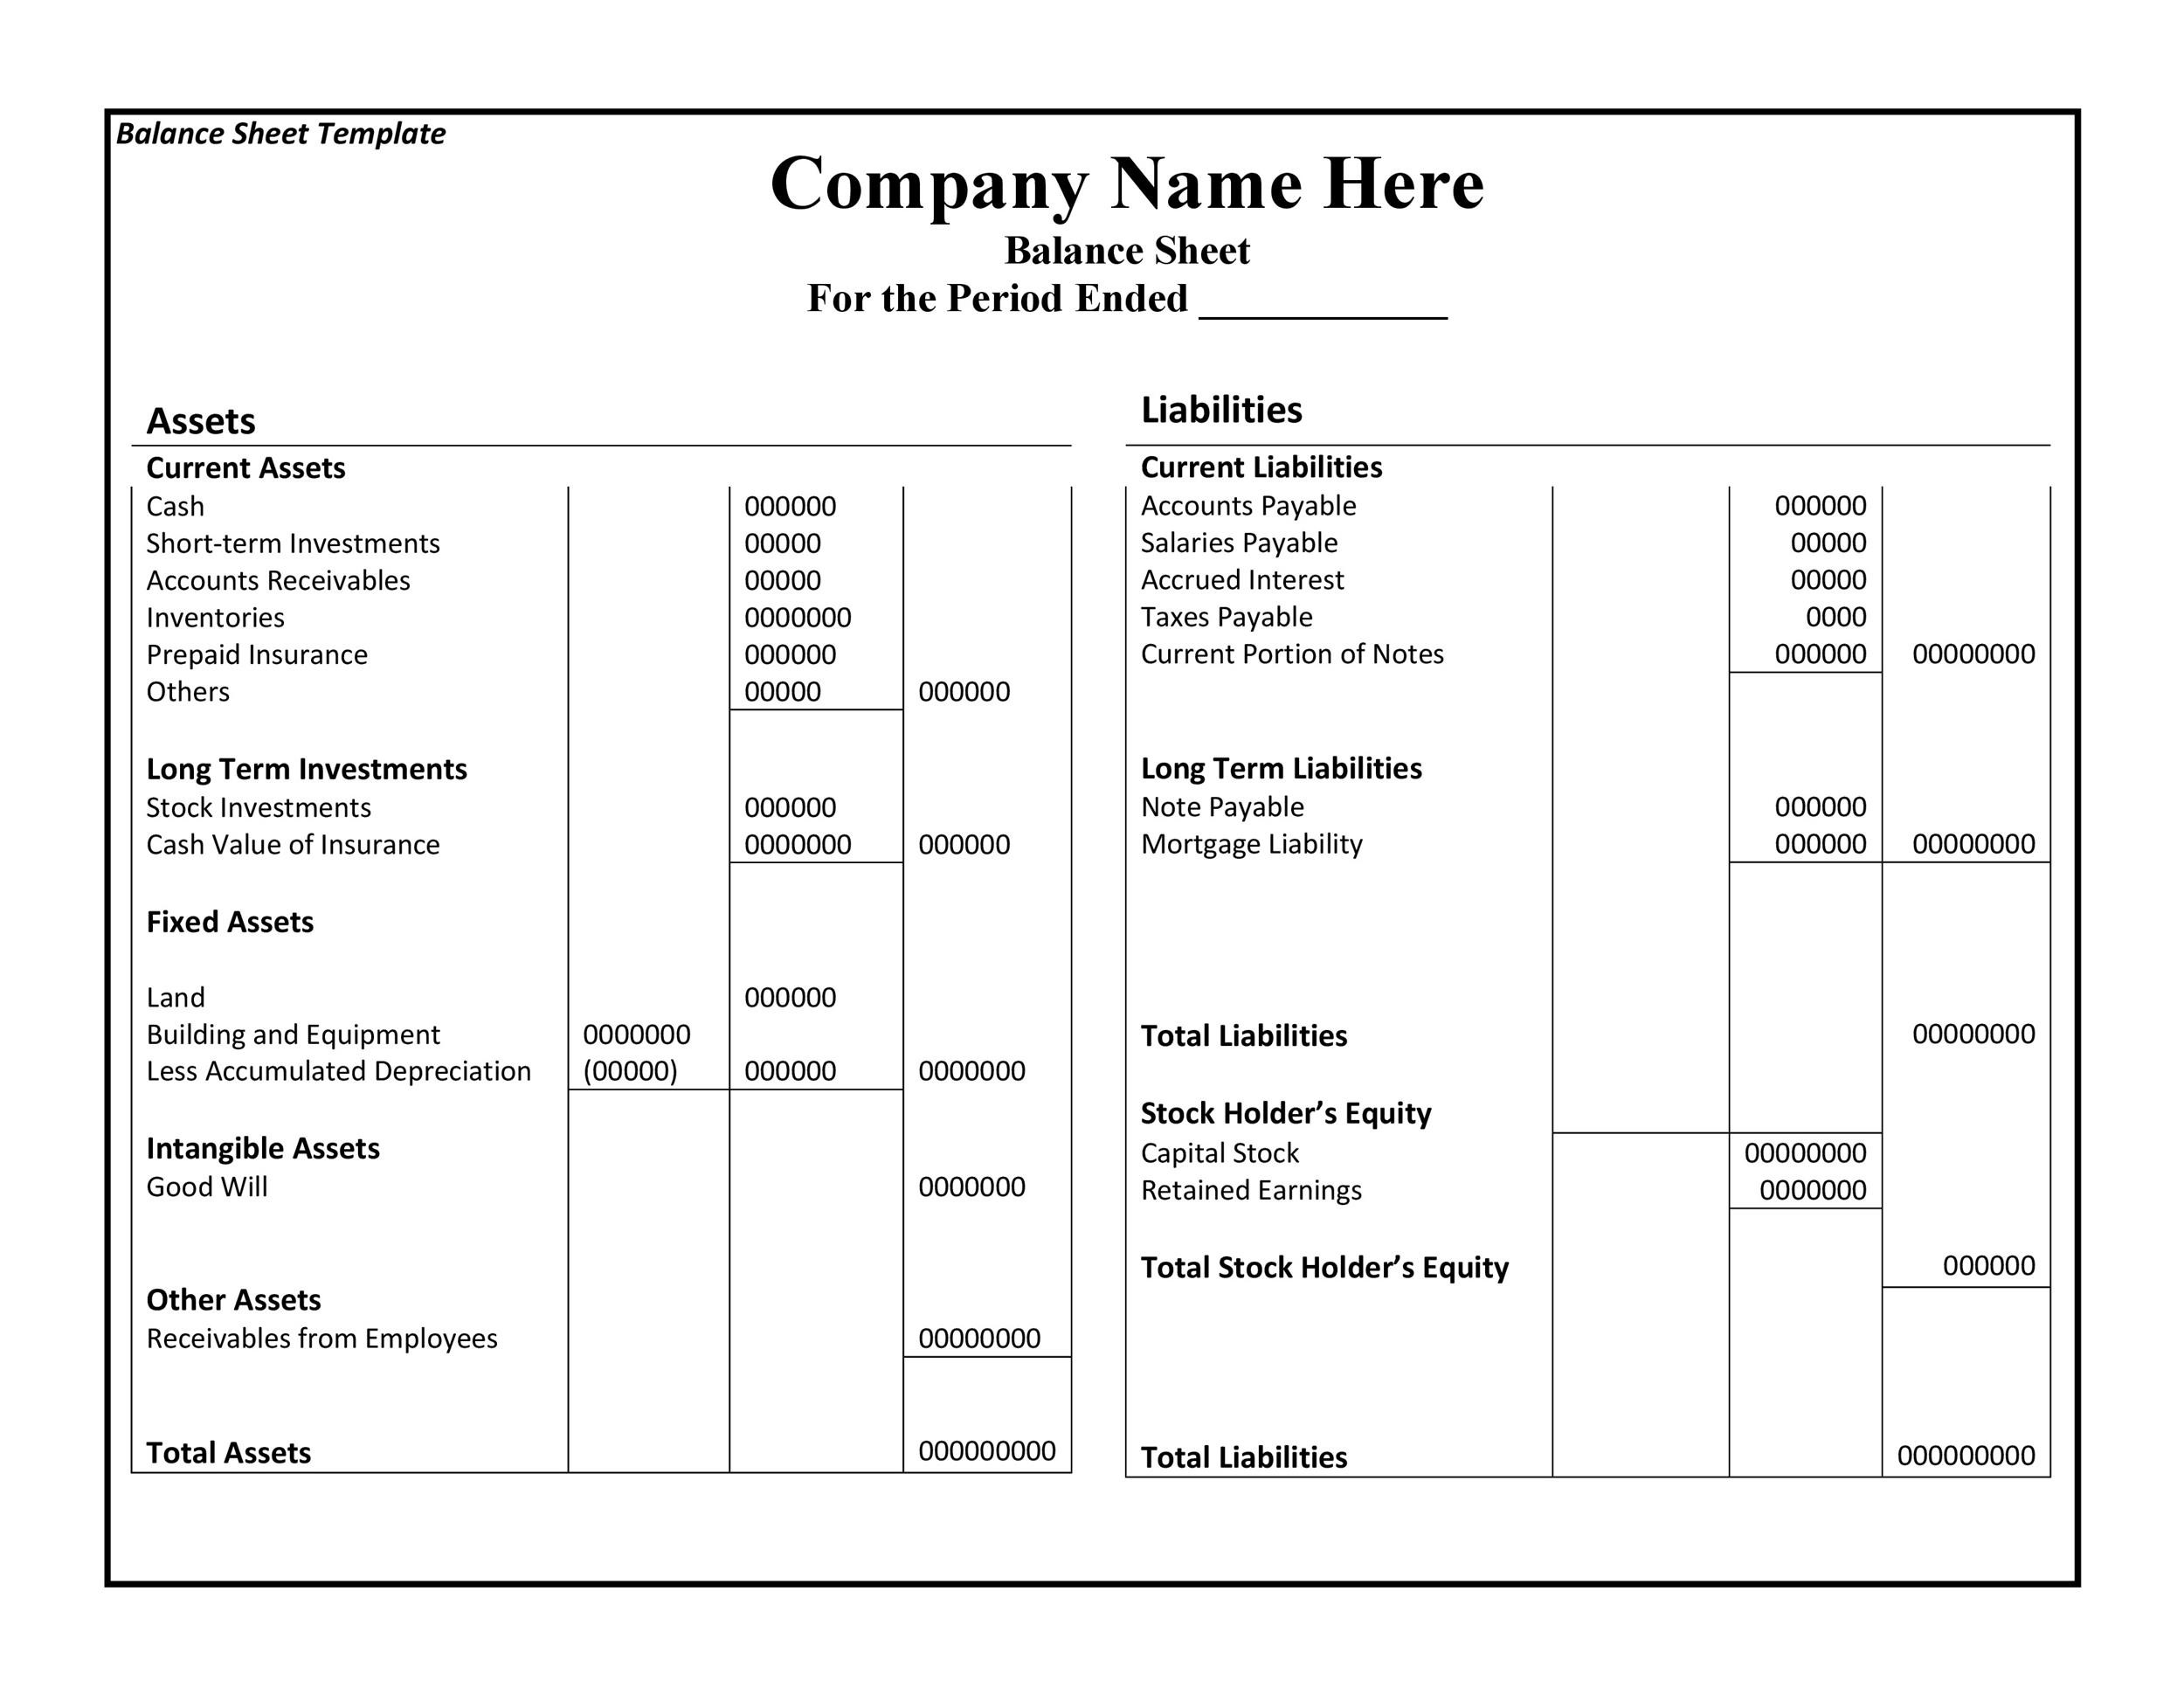 38 Free Balance Sheet Templates  Examples ᐅ Template Lab